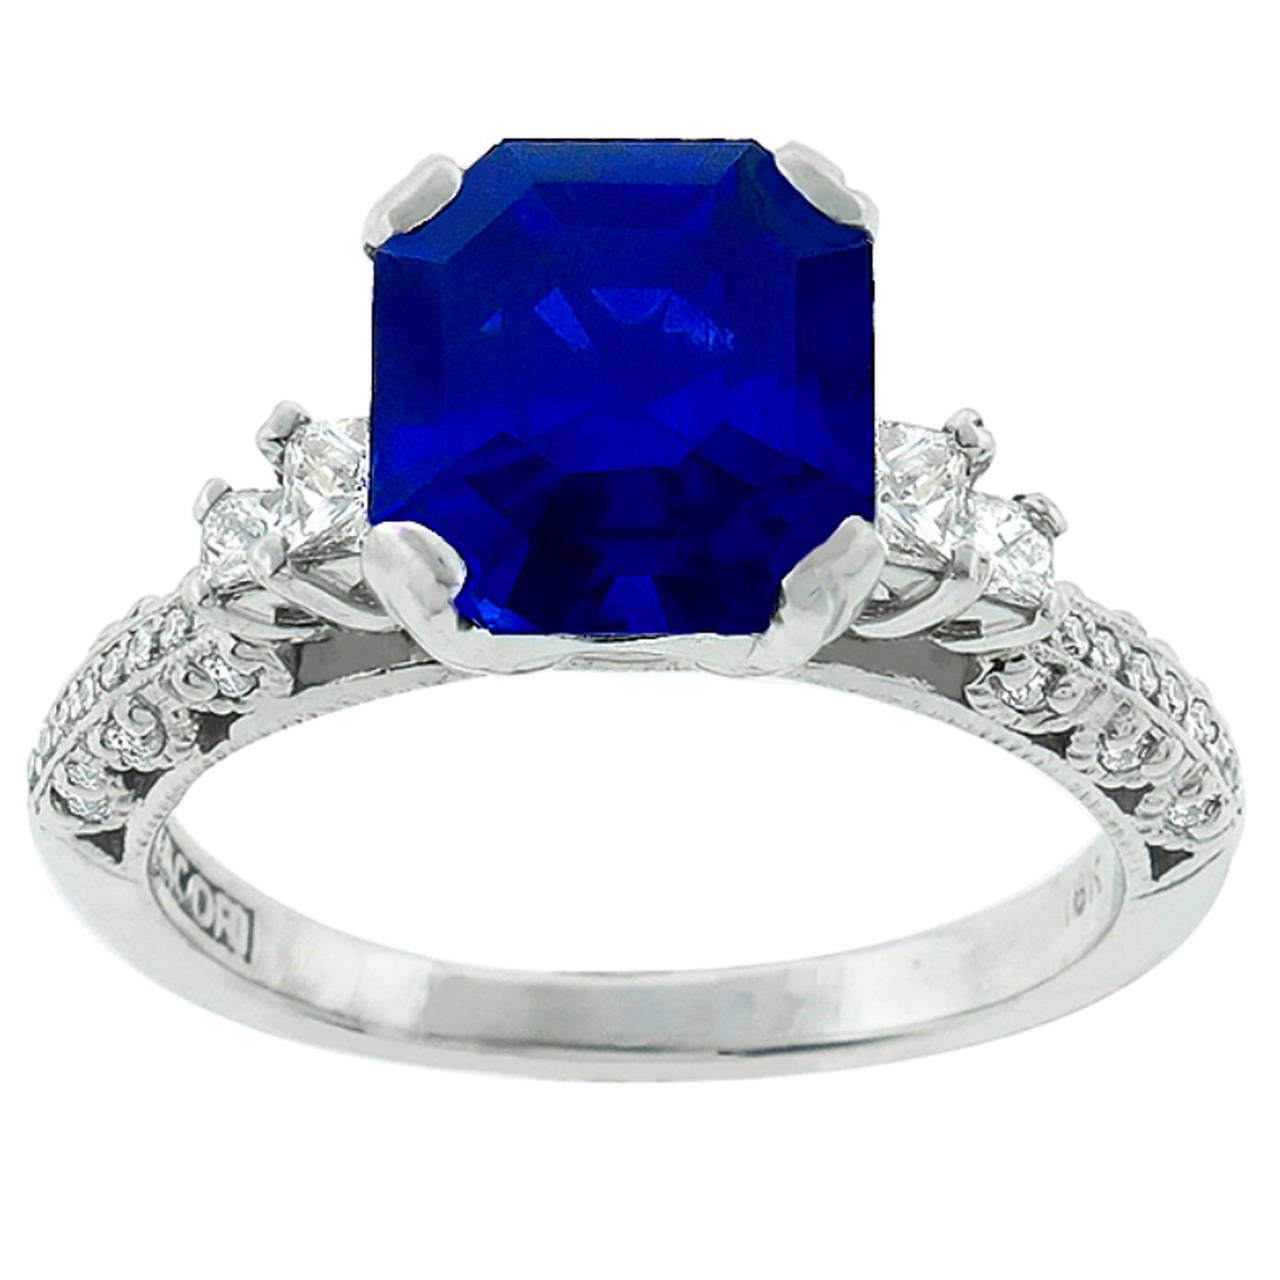 Tacori 3 75ct Sapphire Diamond Engagement Ring For Sale At